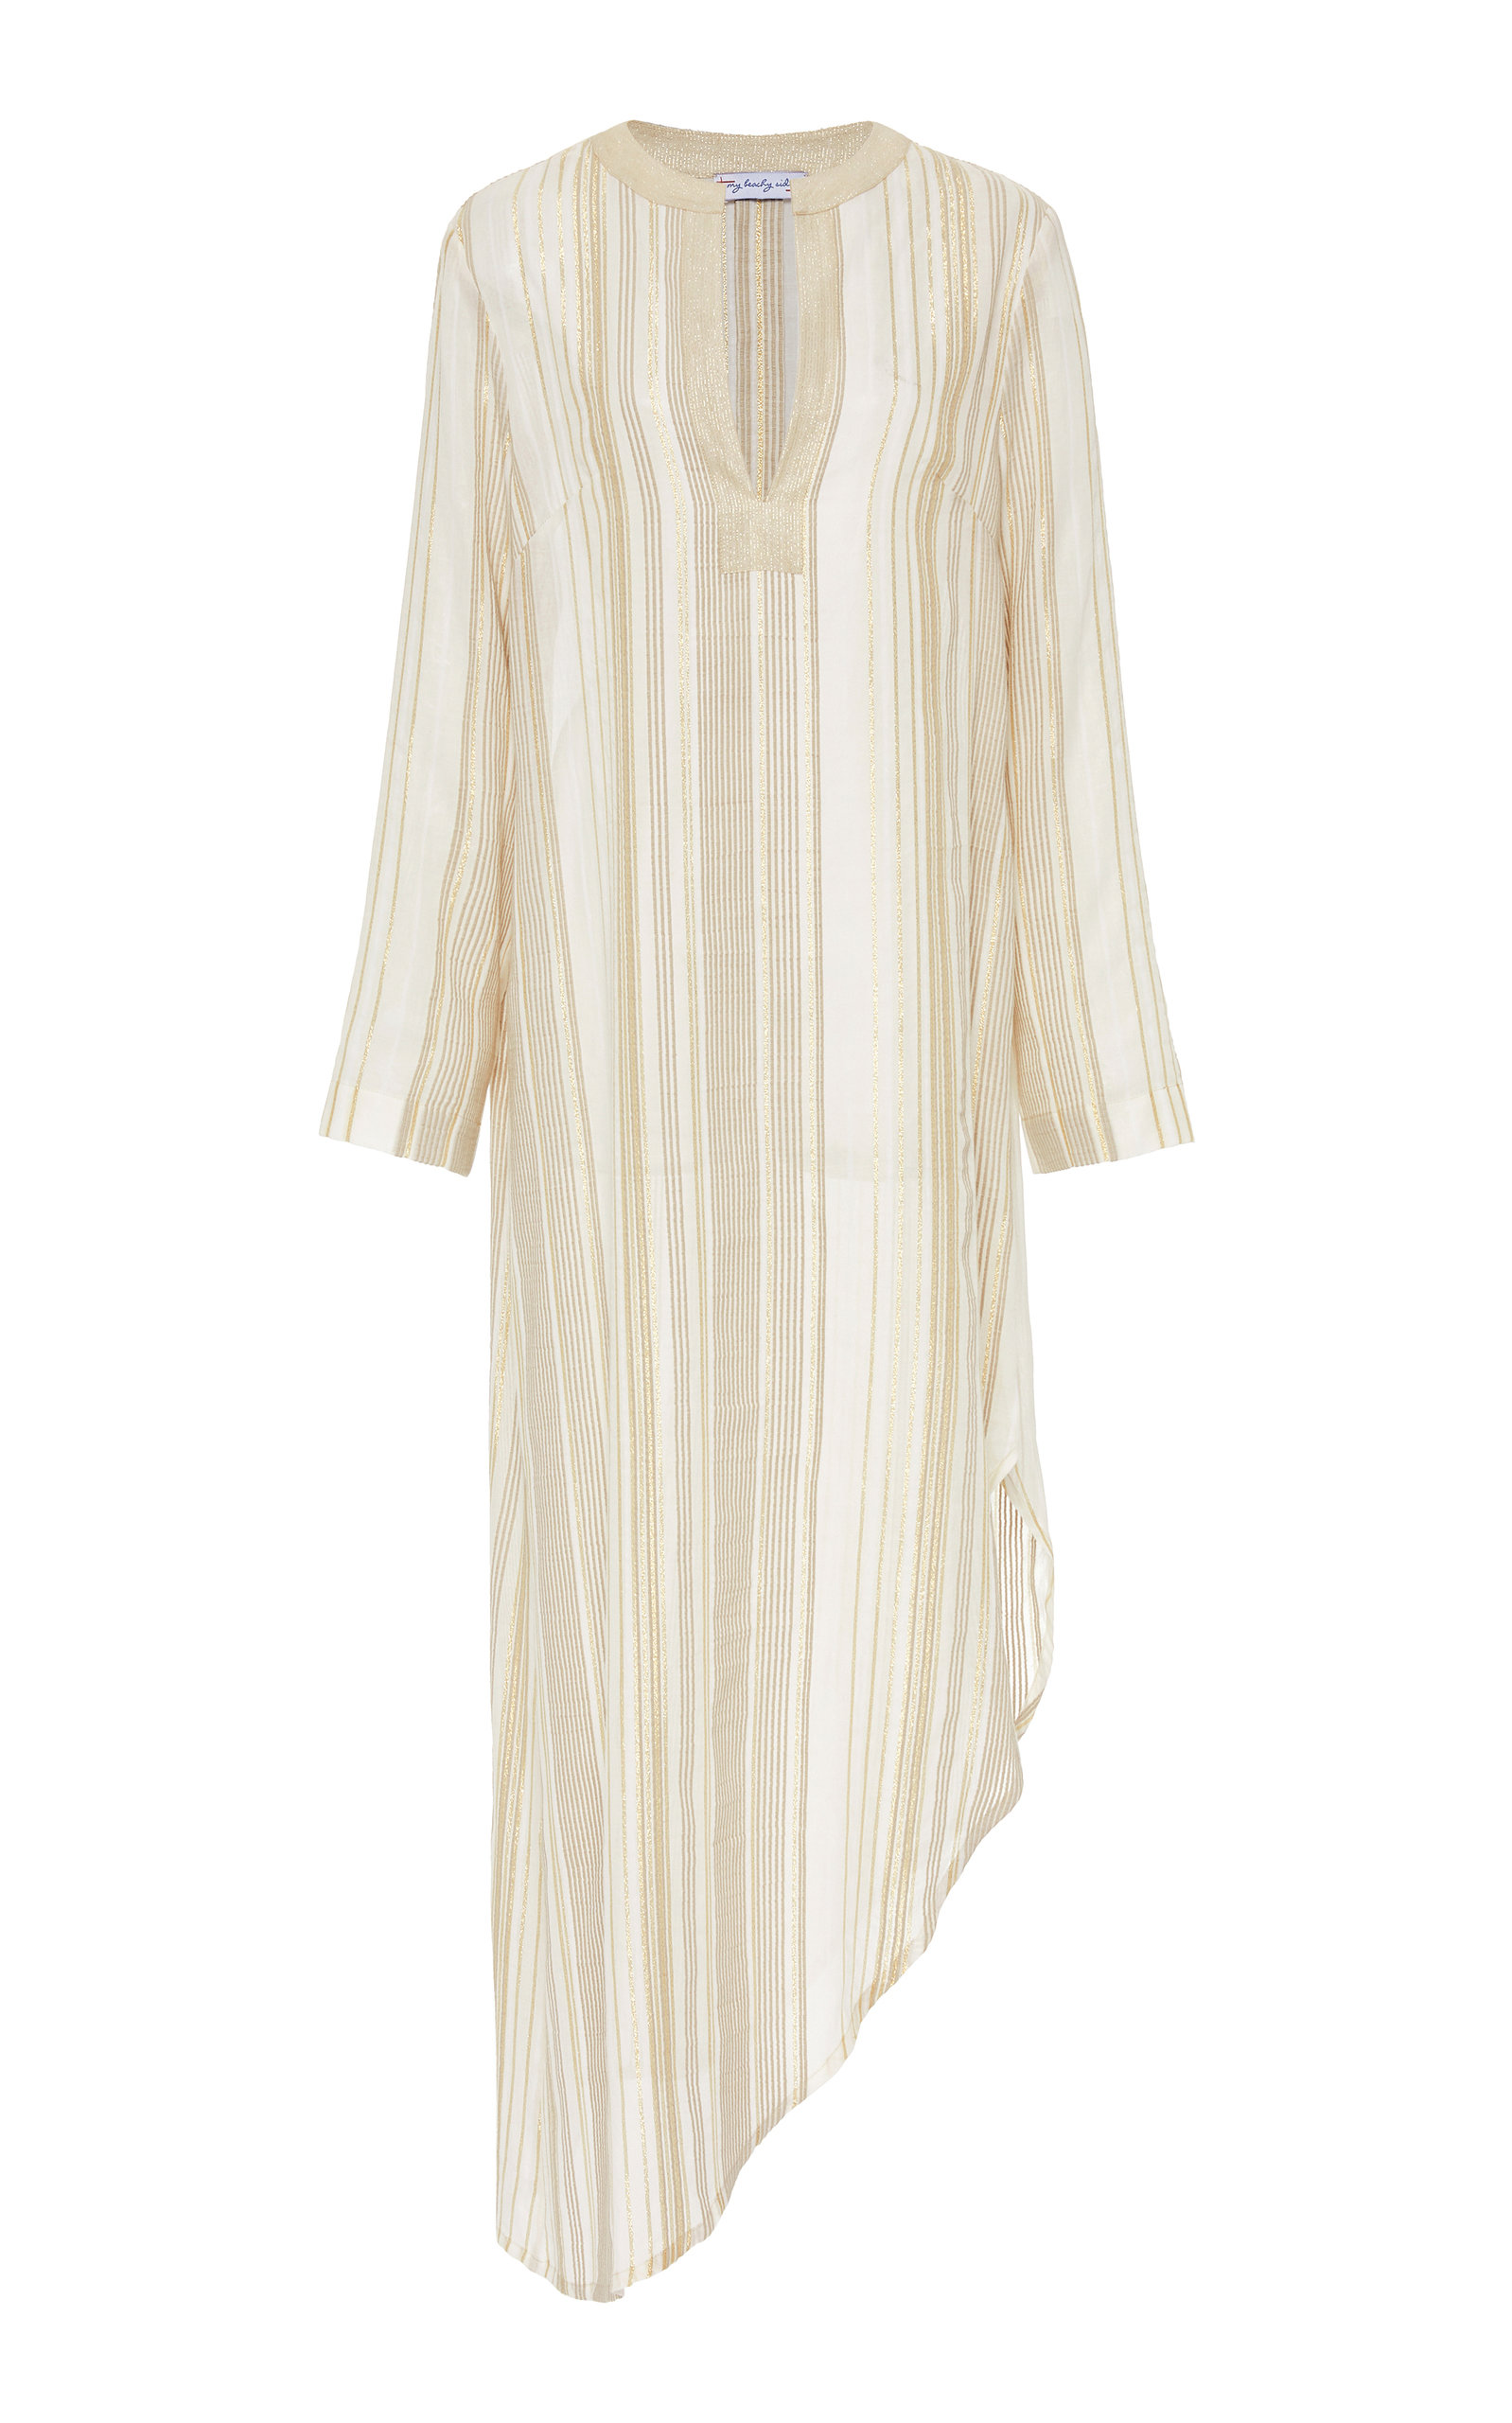 Buy MY BEACHY SIDE Kafciz Asymmetric Striped Cotton Midi Dress online, shop MY BEACHY SIDE at the best price